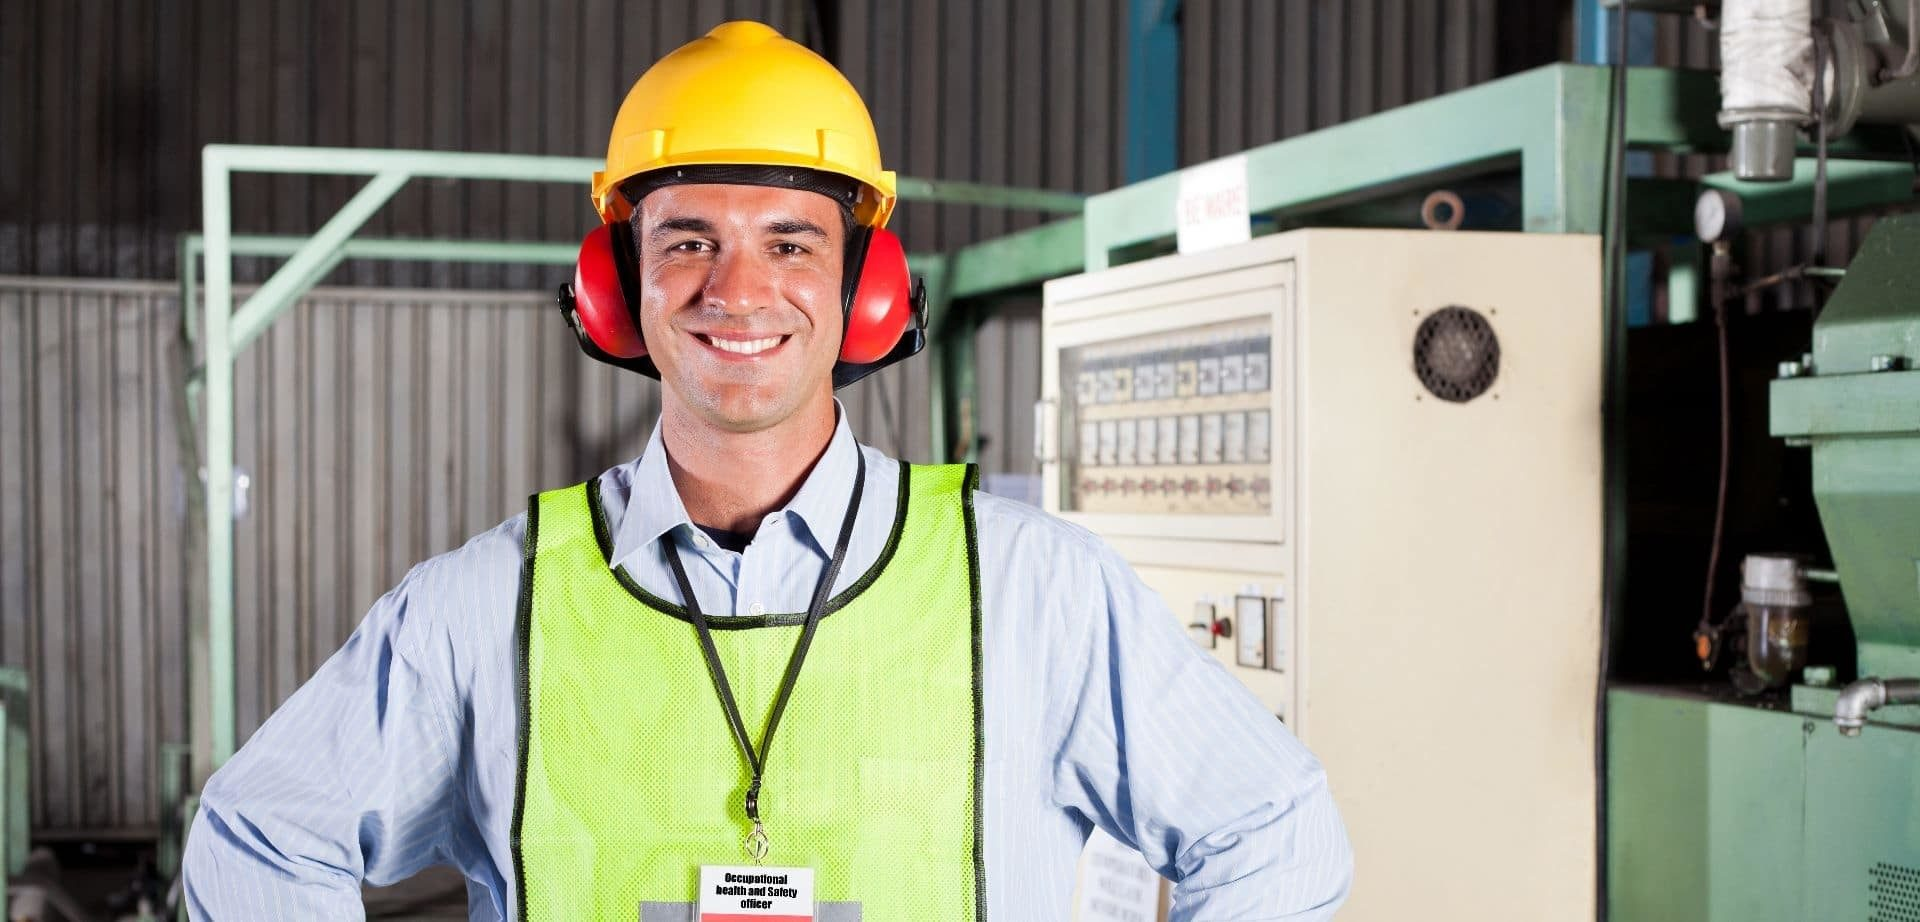 Health and Safety job role